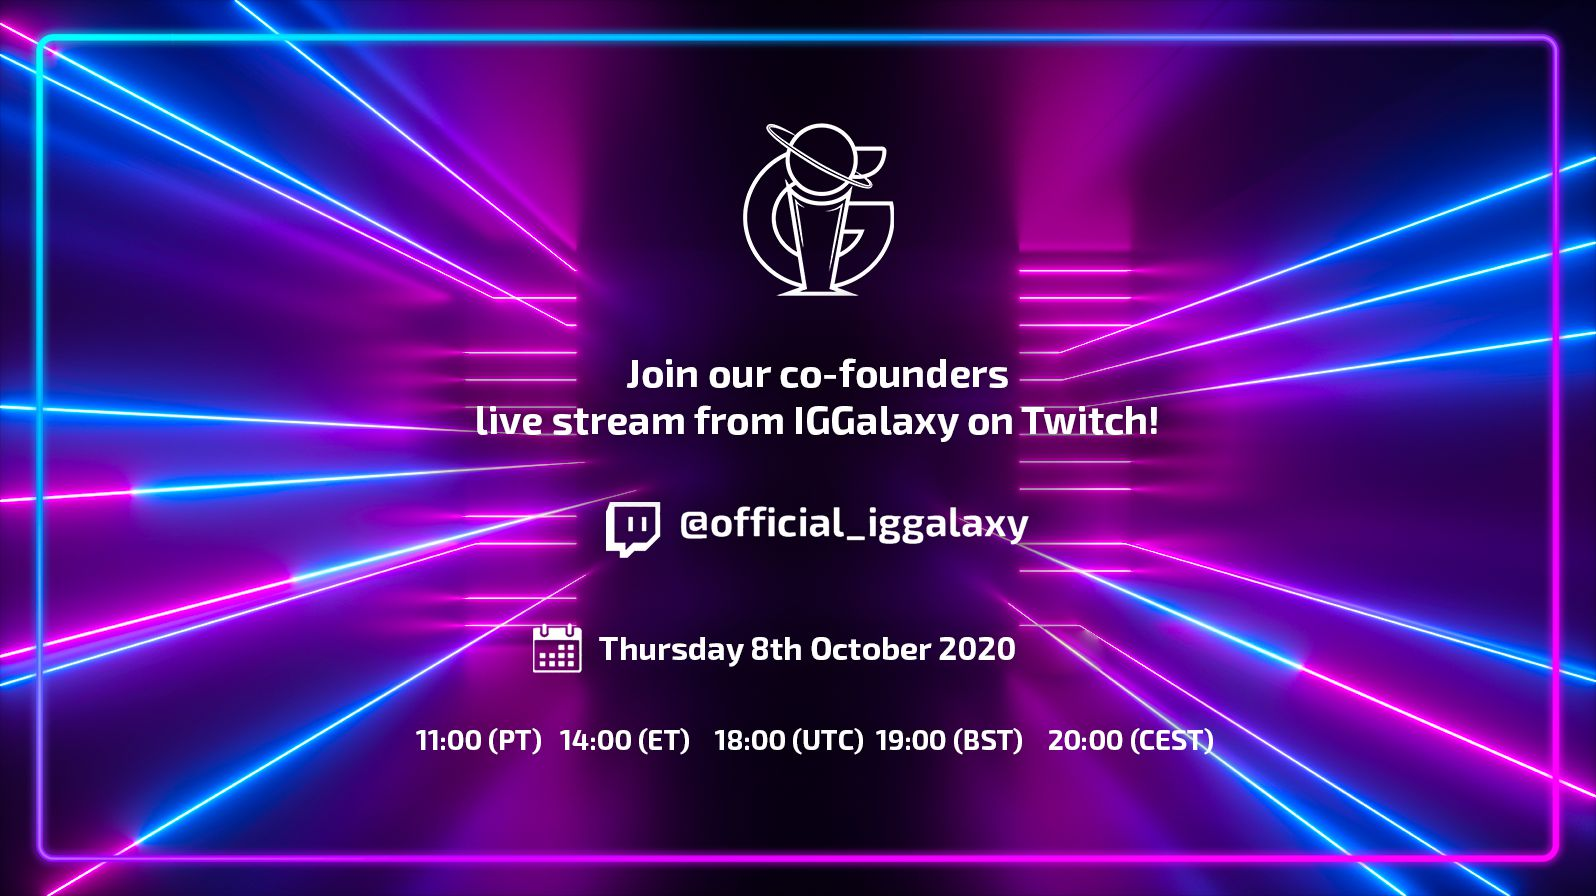 The date of our live stream has changed!